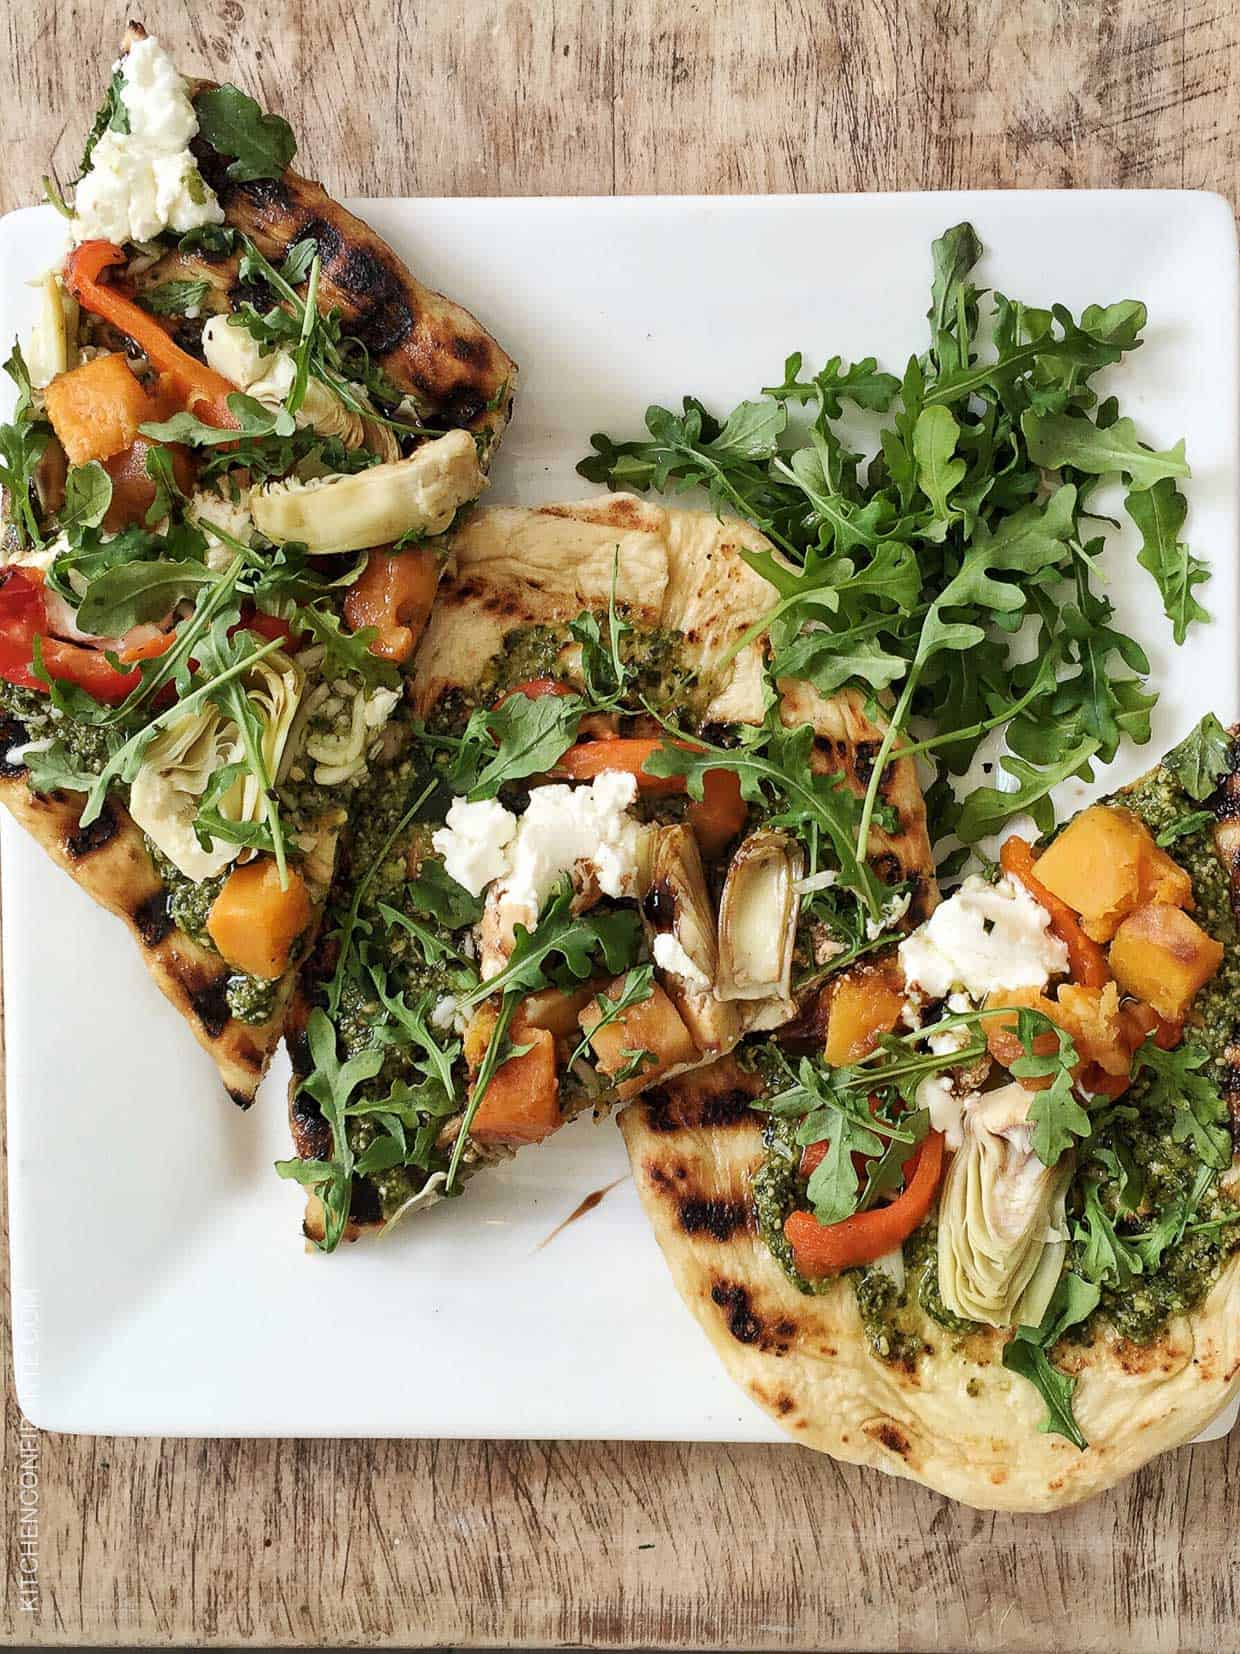 This Skillet Pesto Flatbread with Goat Cheese, Artichokes and Roasted Butternut Squash is so simple, you can make it in on the stove top!